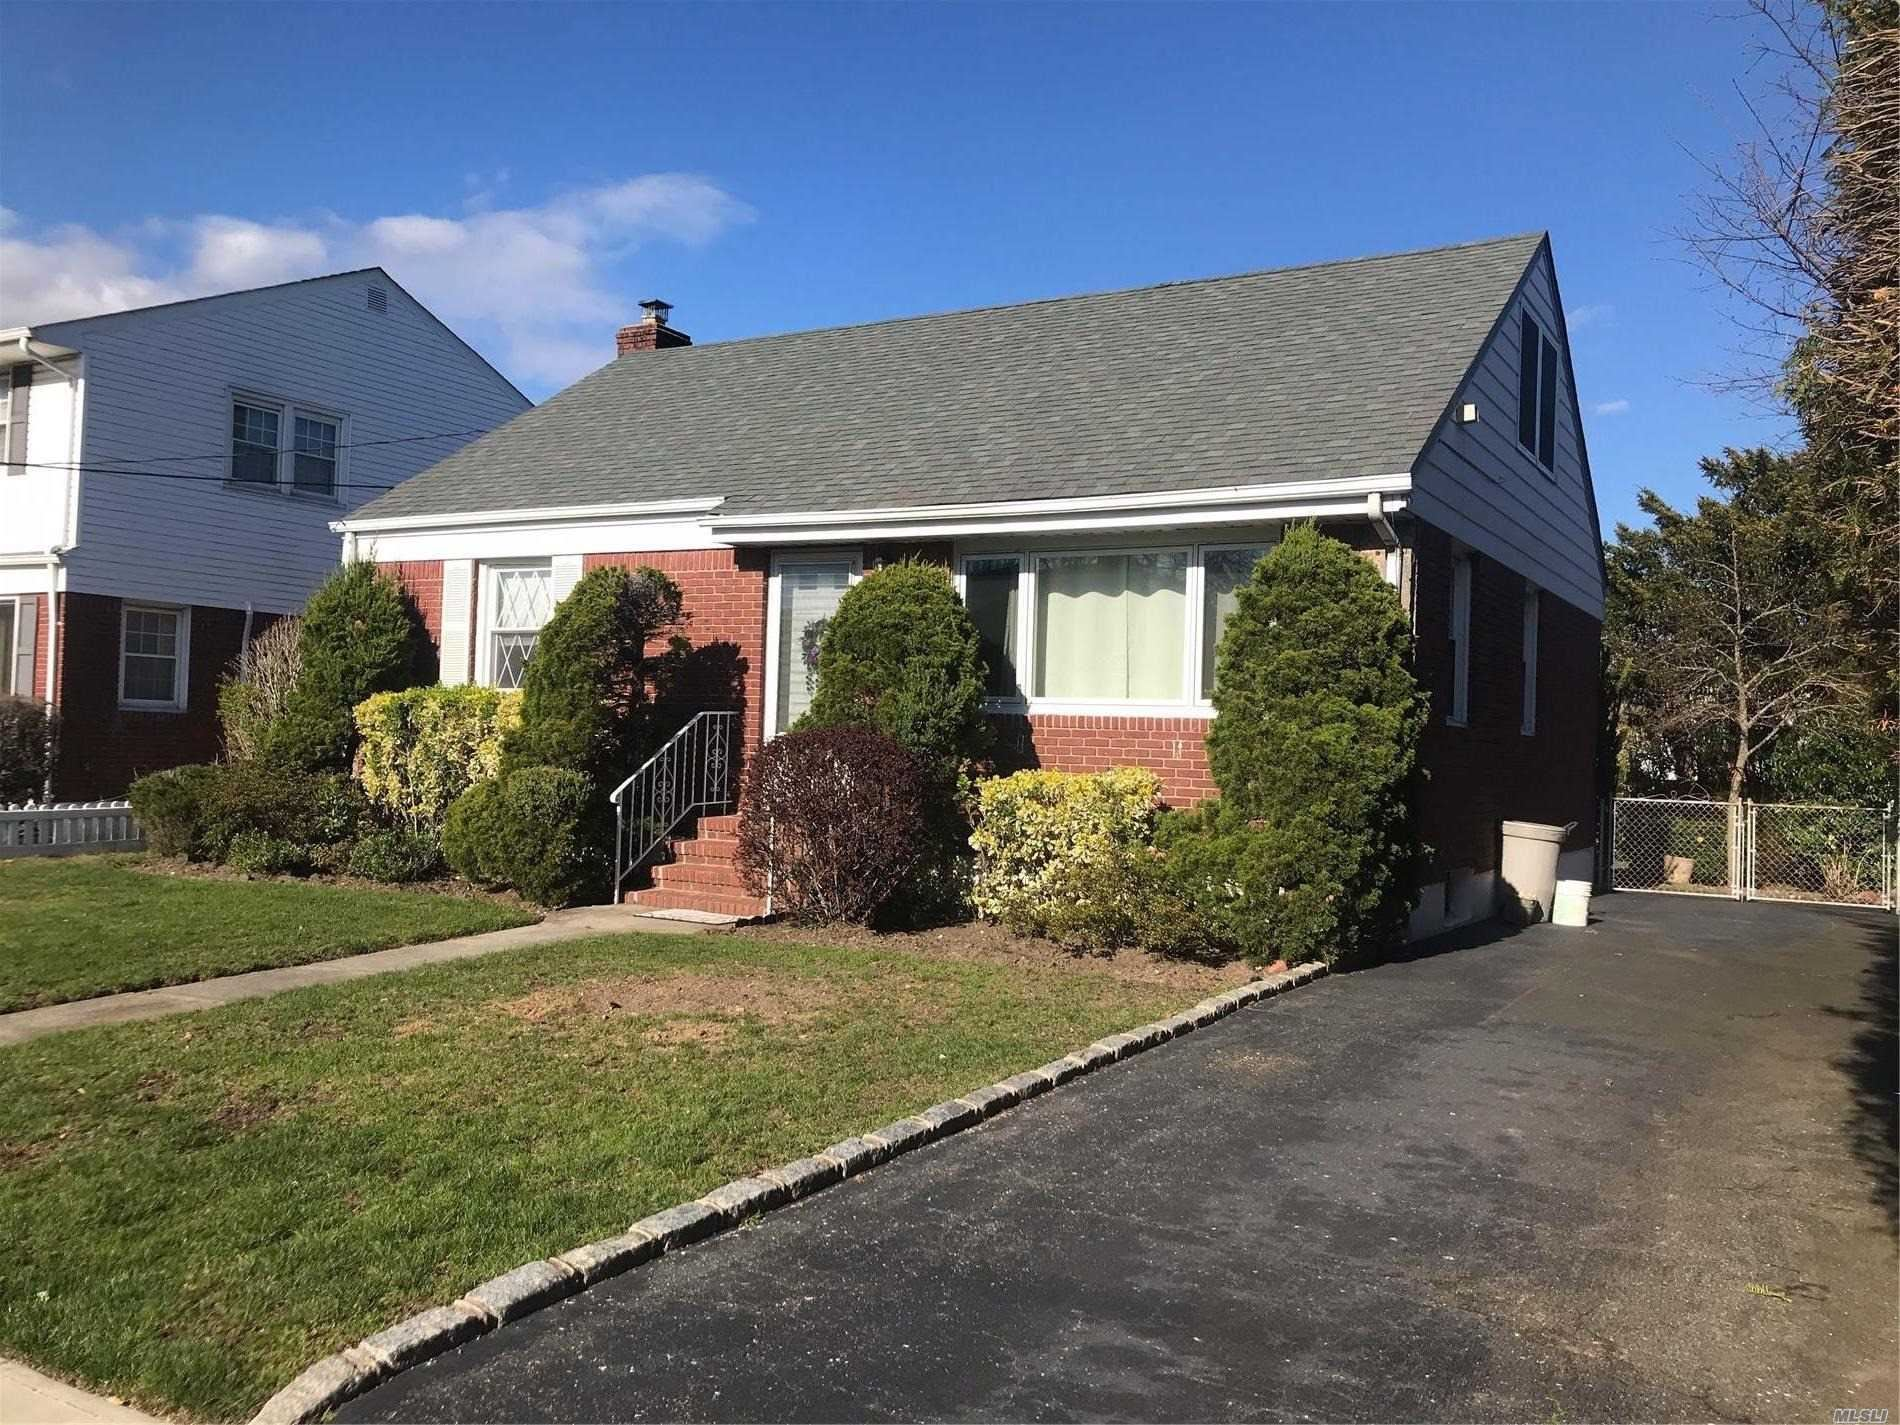 2915 Laurel Ave, Baldwin, NY 11510 - MLS#: 3217062